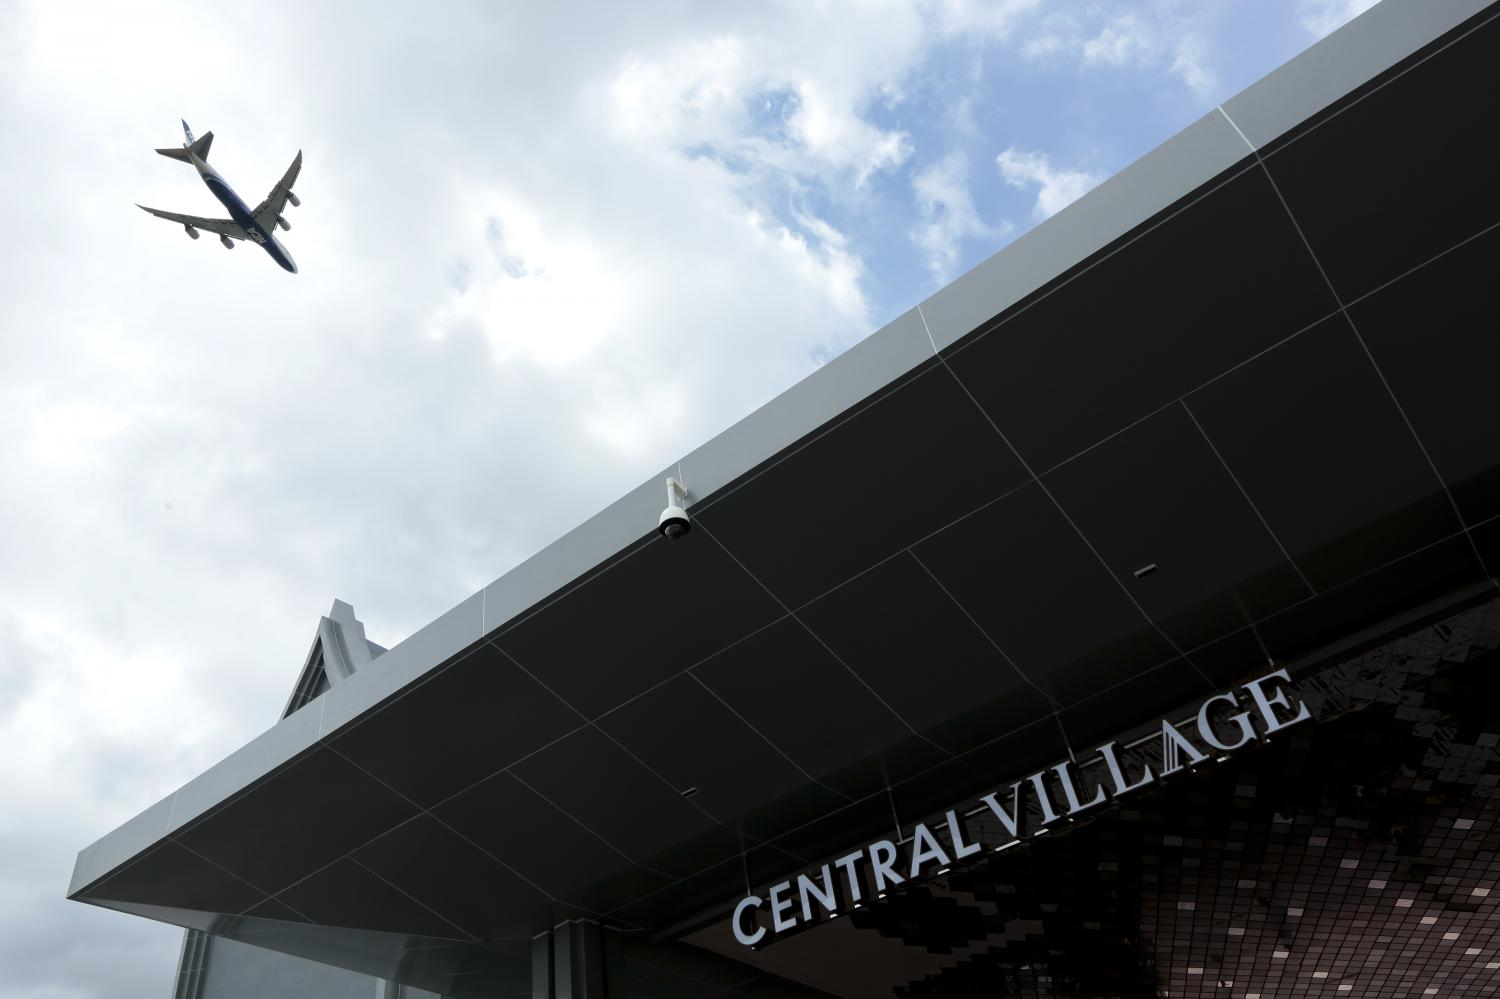 A plane flies over Central Village, a luxury outlet near Suvarnabhumi airport. (Photo by Patipat Janthong)